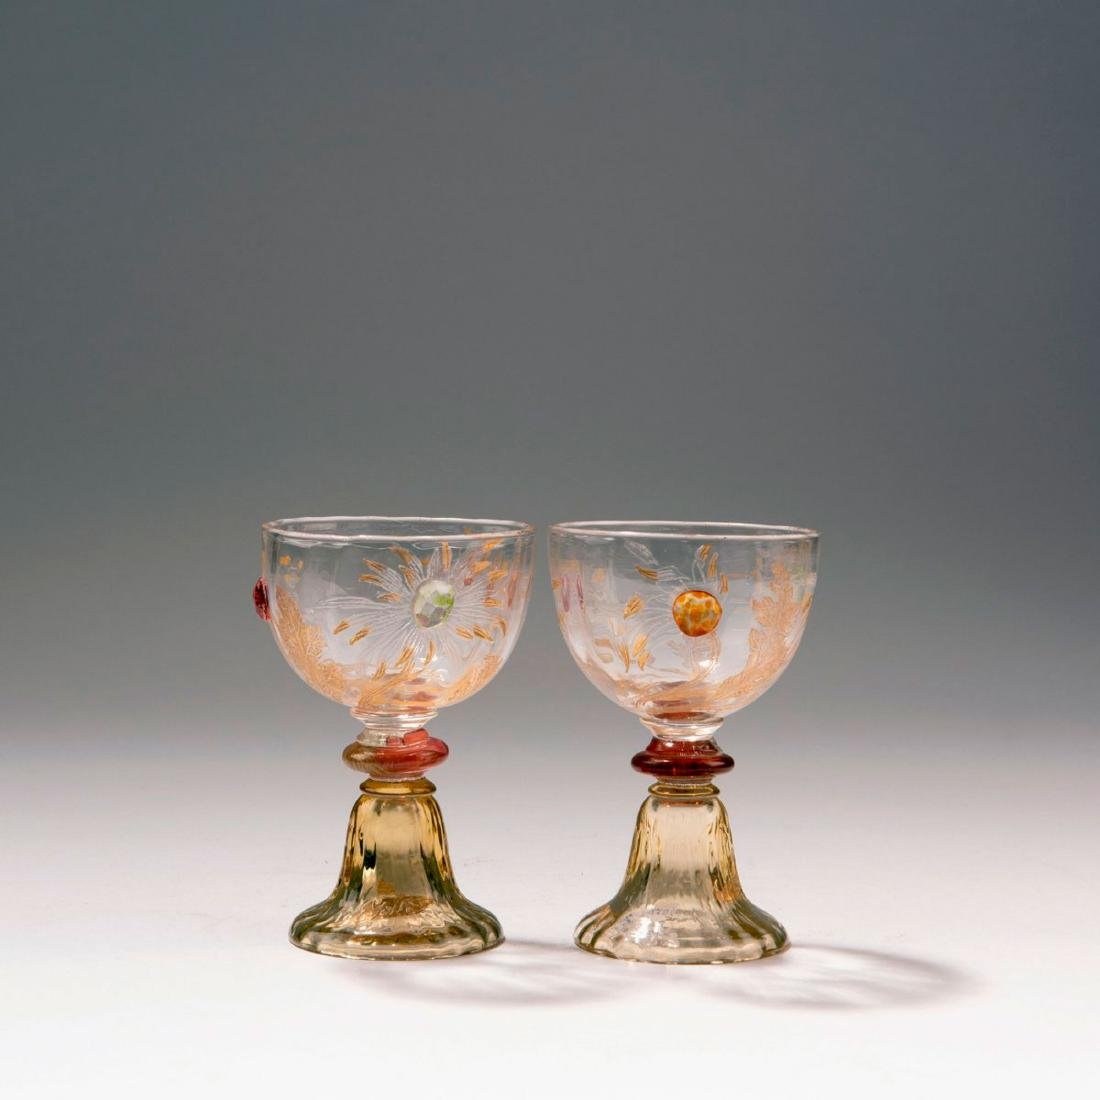 Two sherry glasses from the 'Chrysanthèmes' set, 1903